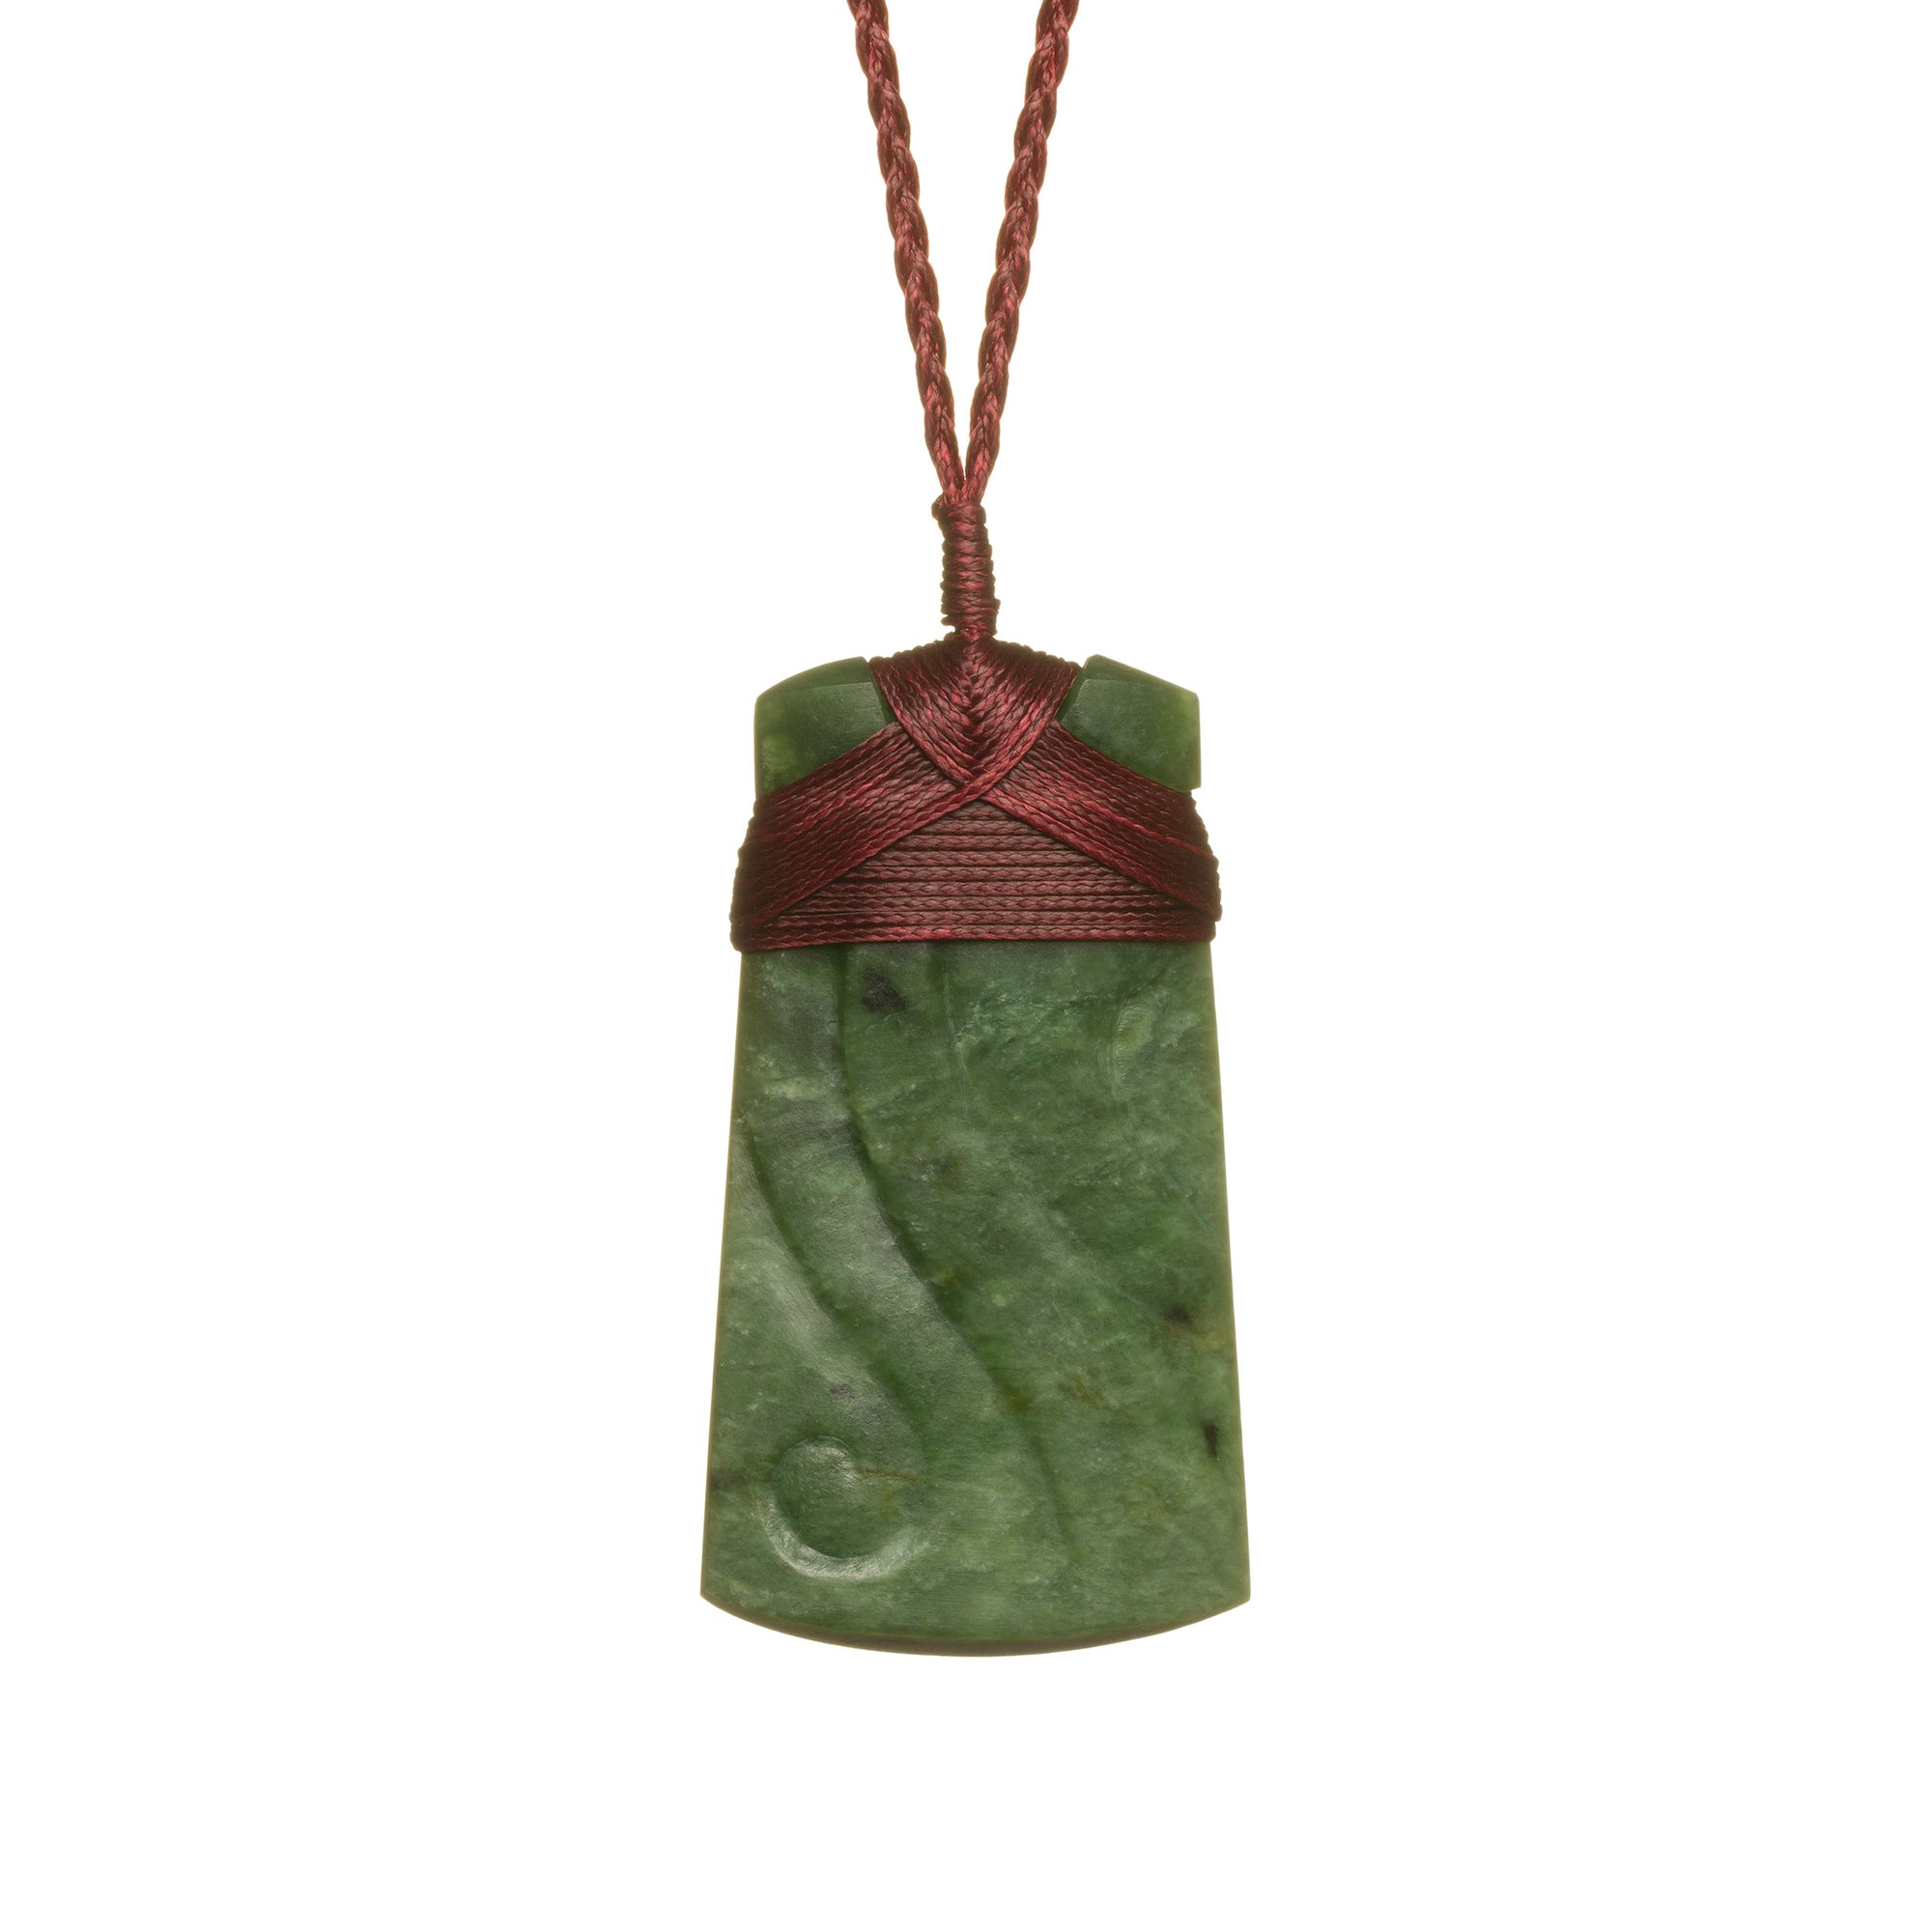 New Zealand Pounamu Engraved Adze Necklace